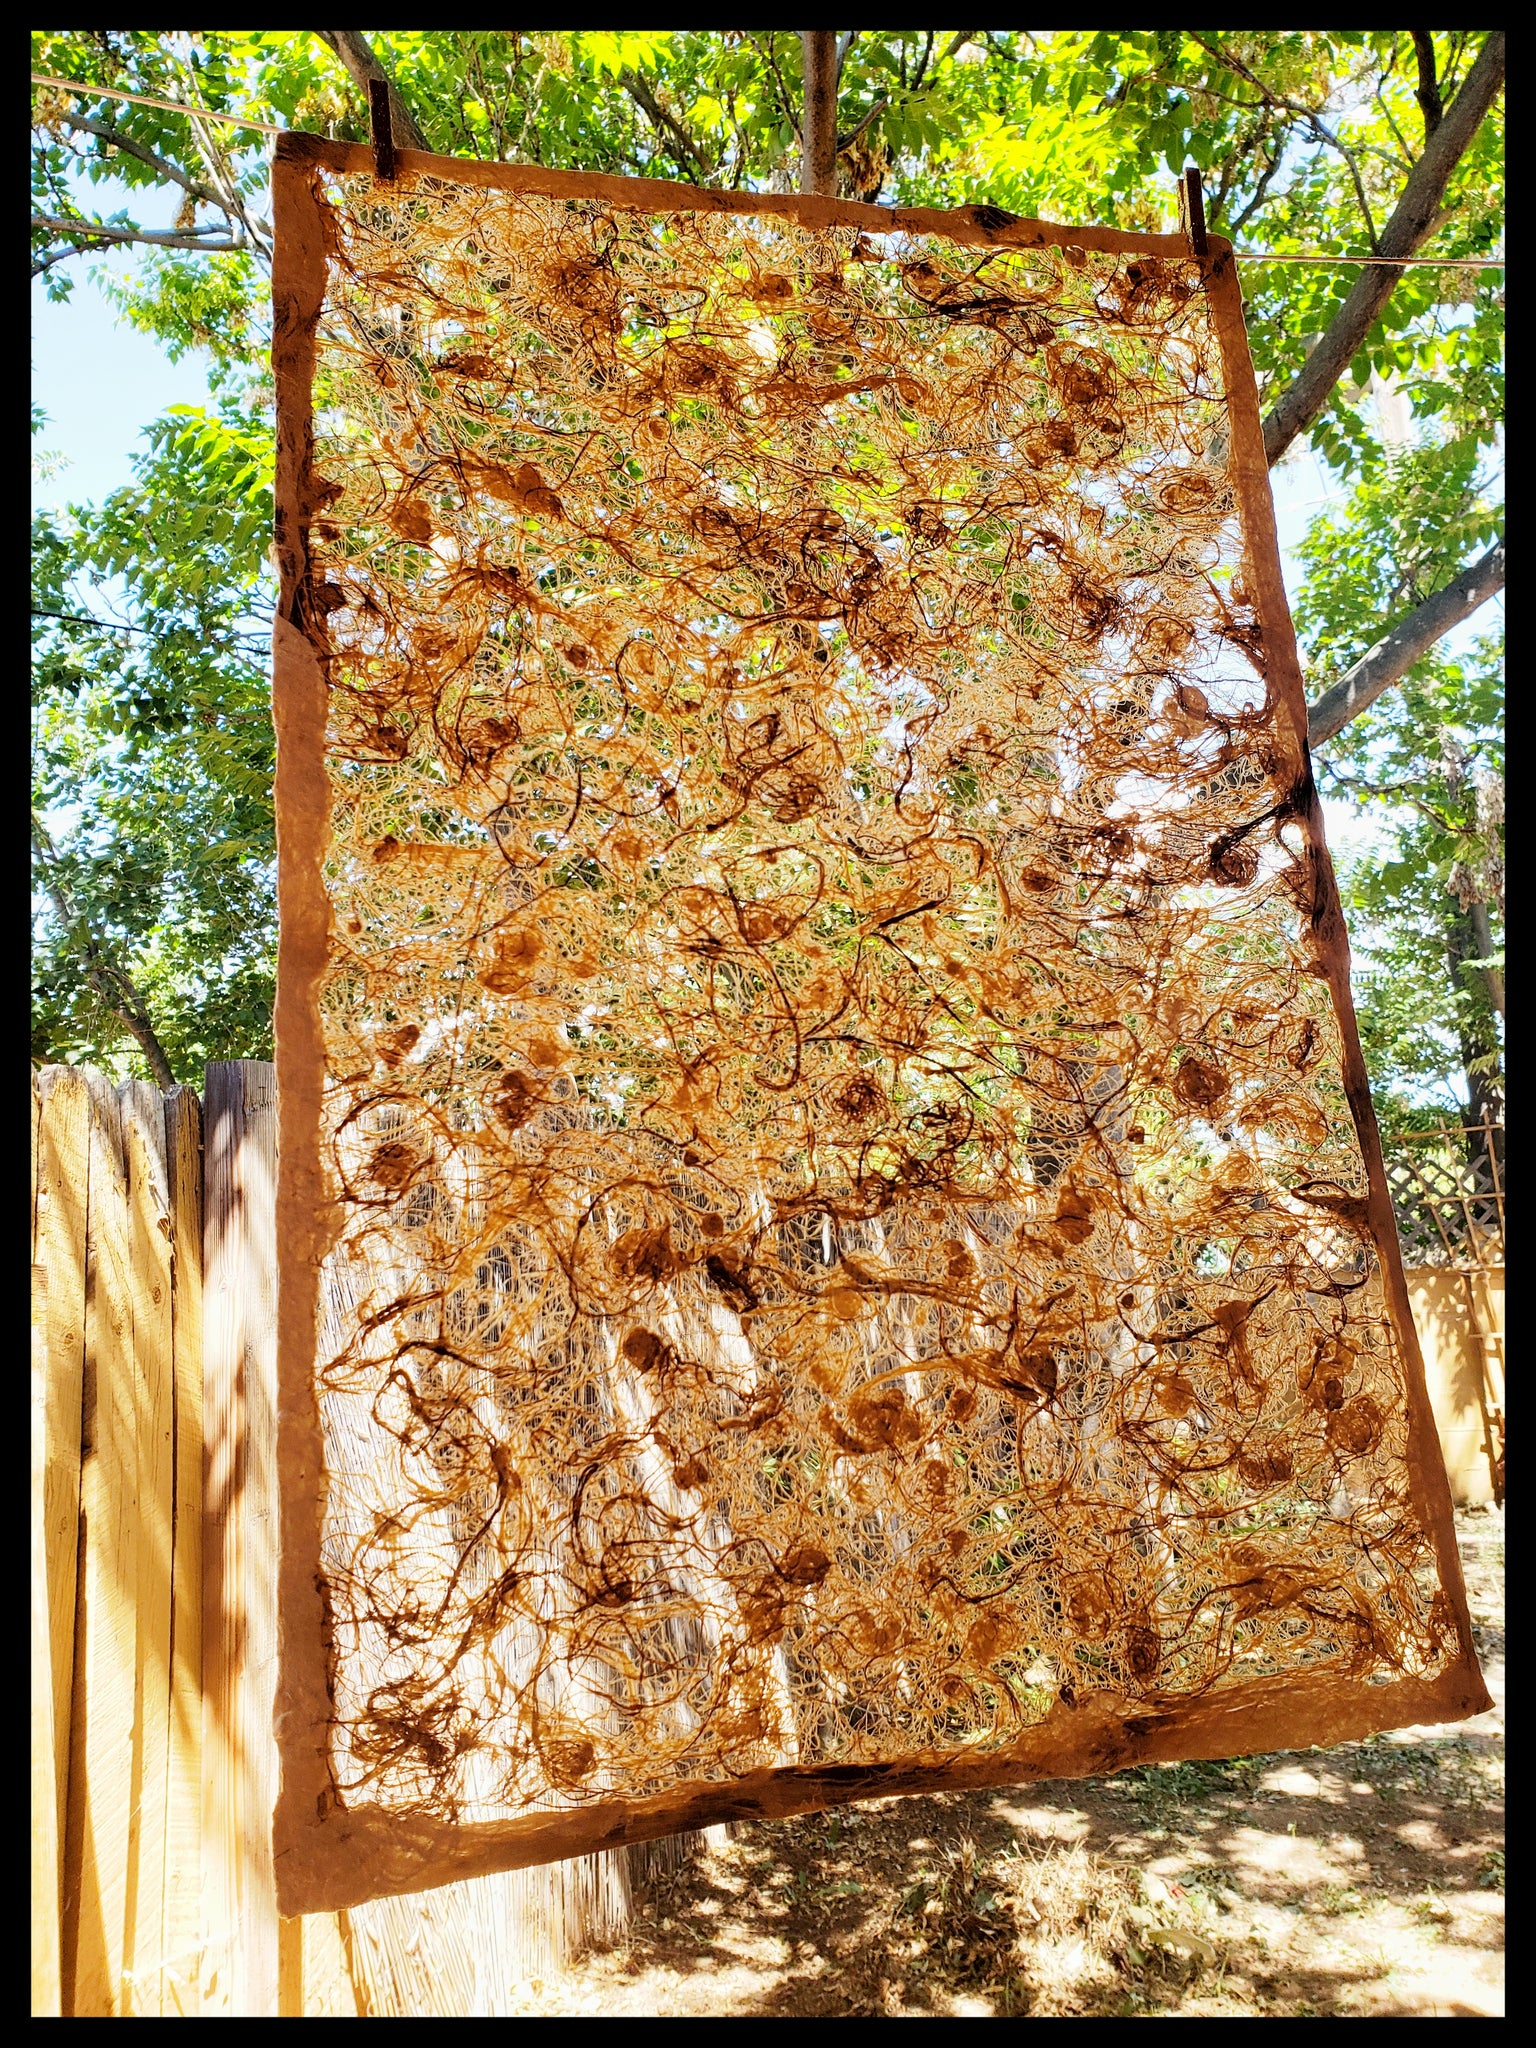 "Amate handmade paper abstract pattern wooden colors made in Mexico from wild fig trees approximately 16"" x 20"" patterns vary ADA the gilded page Santa Fe"